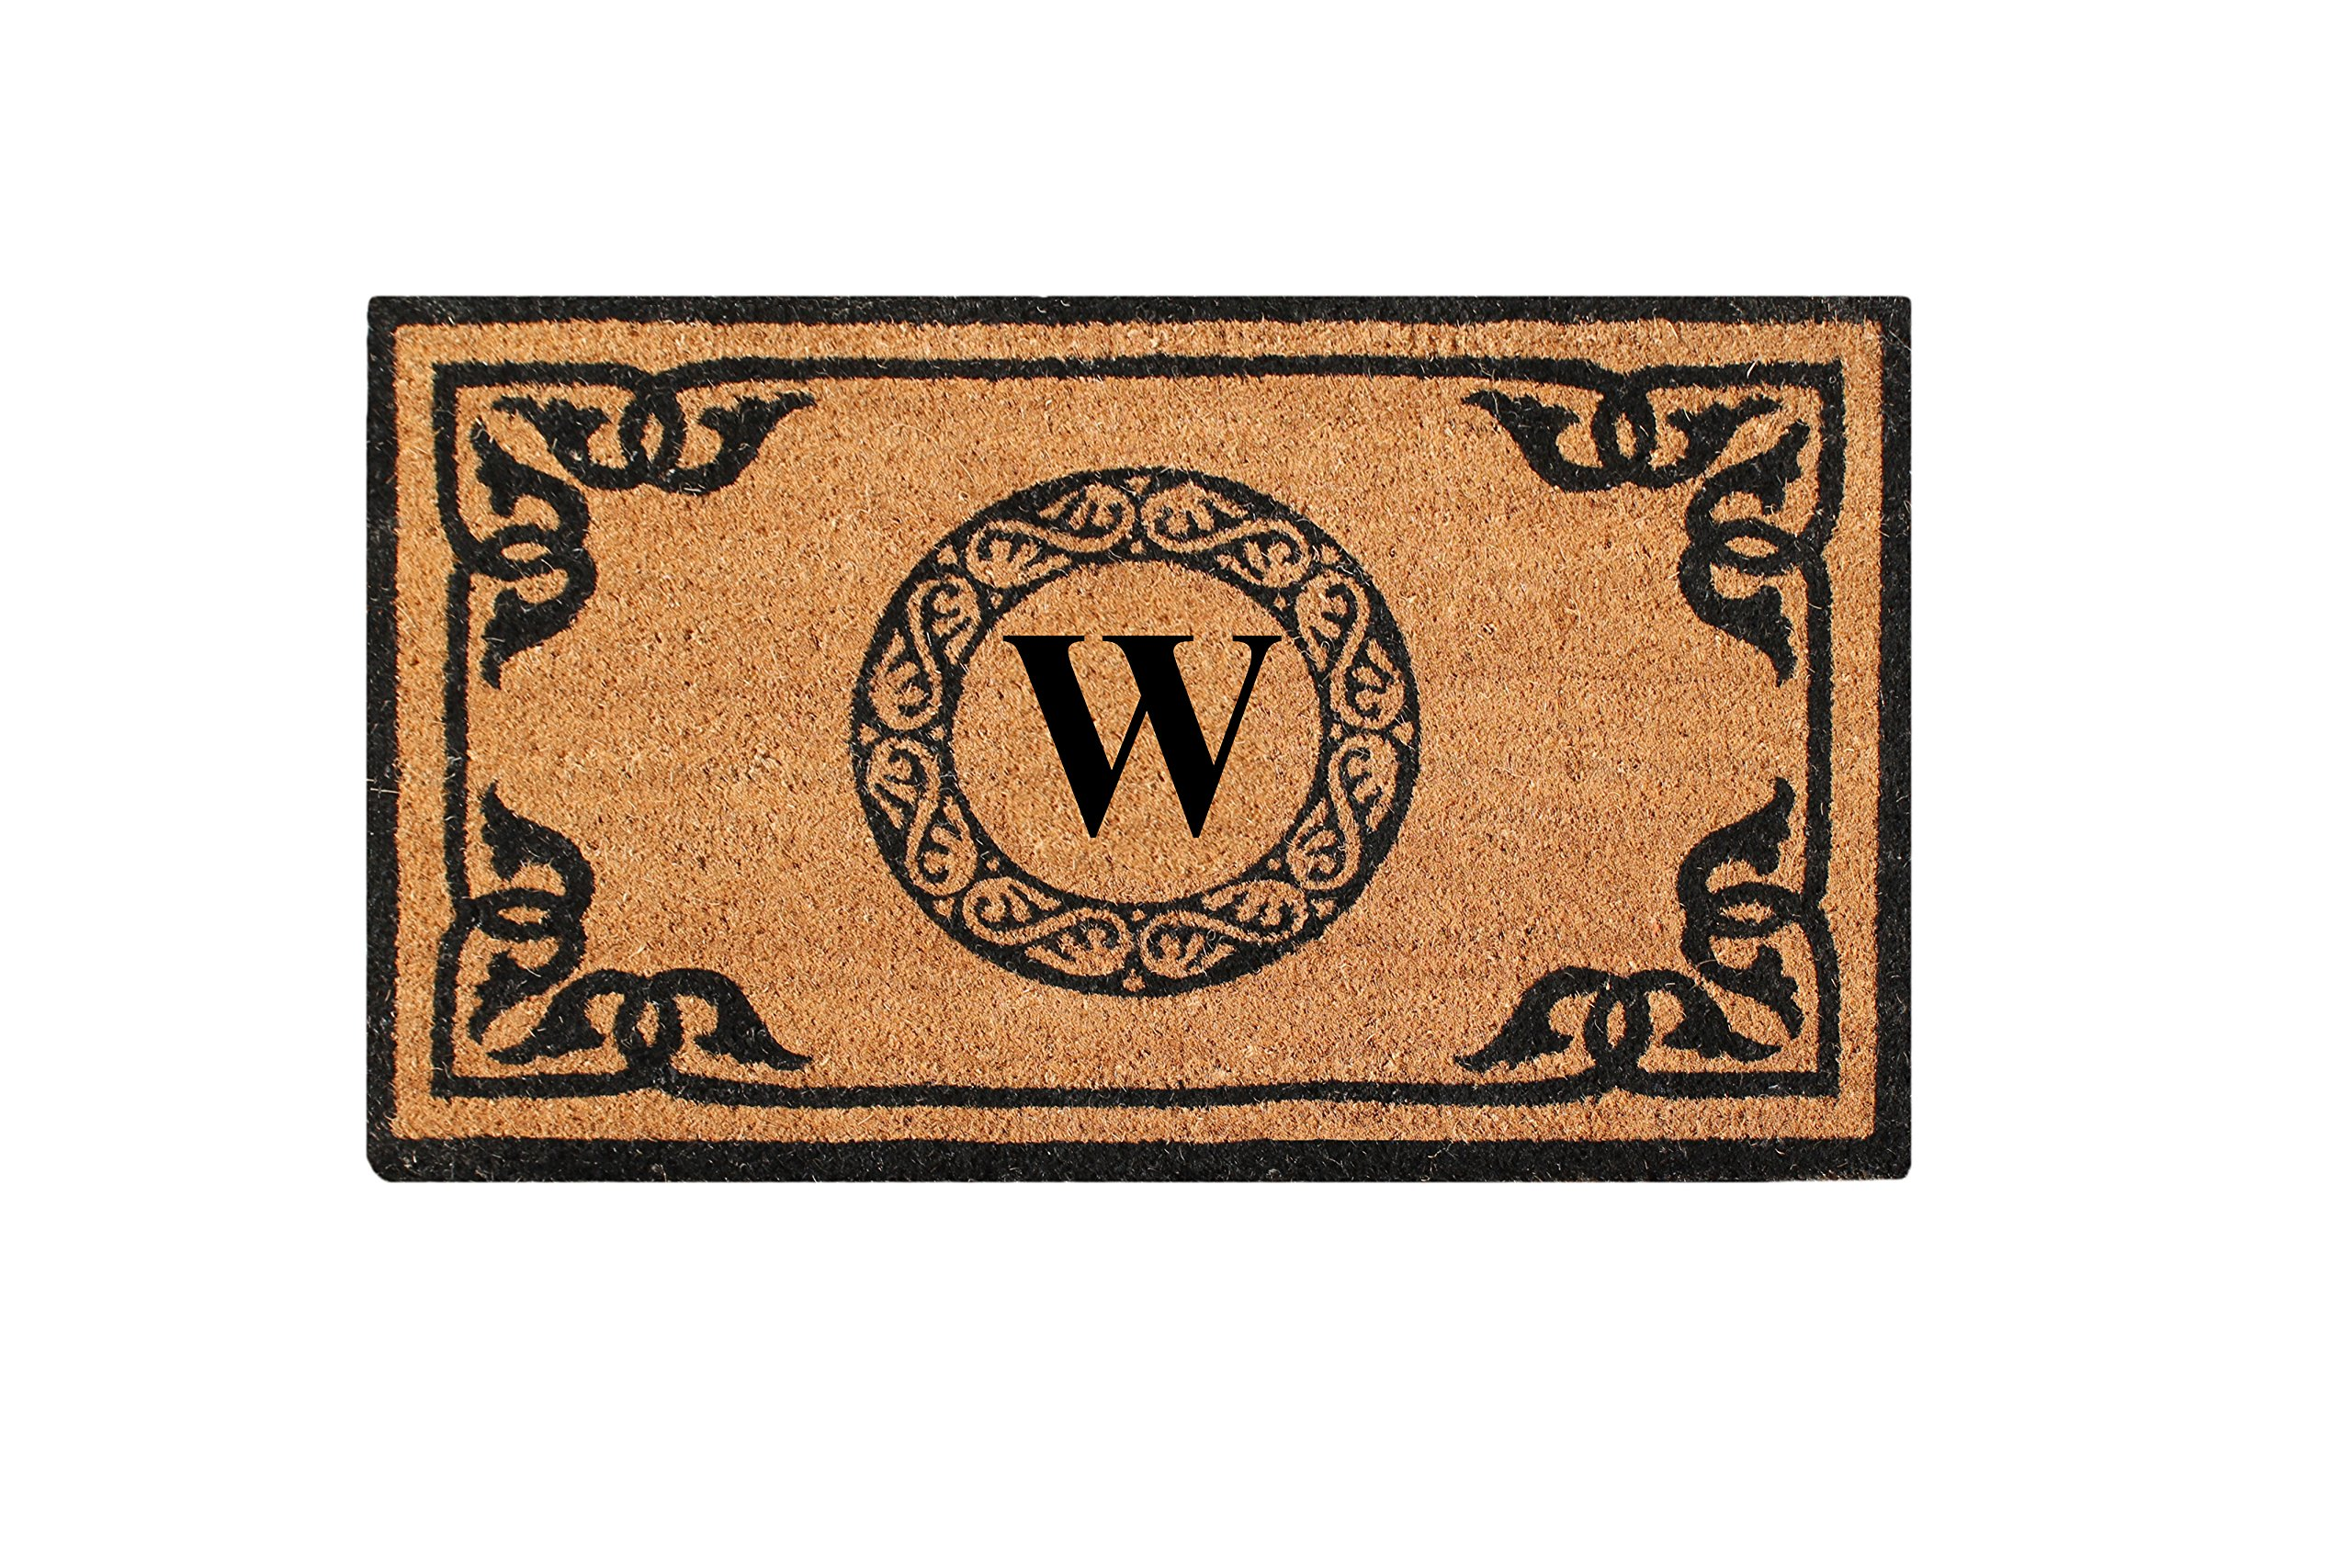 A1 Home Collections PT3006W First Impression Hand Crafted by Artisans Geneva Monogrammed Entry Doormat, 24''X39''